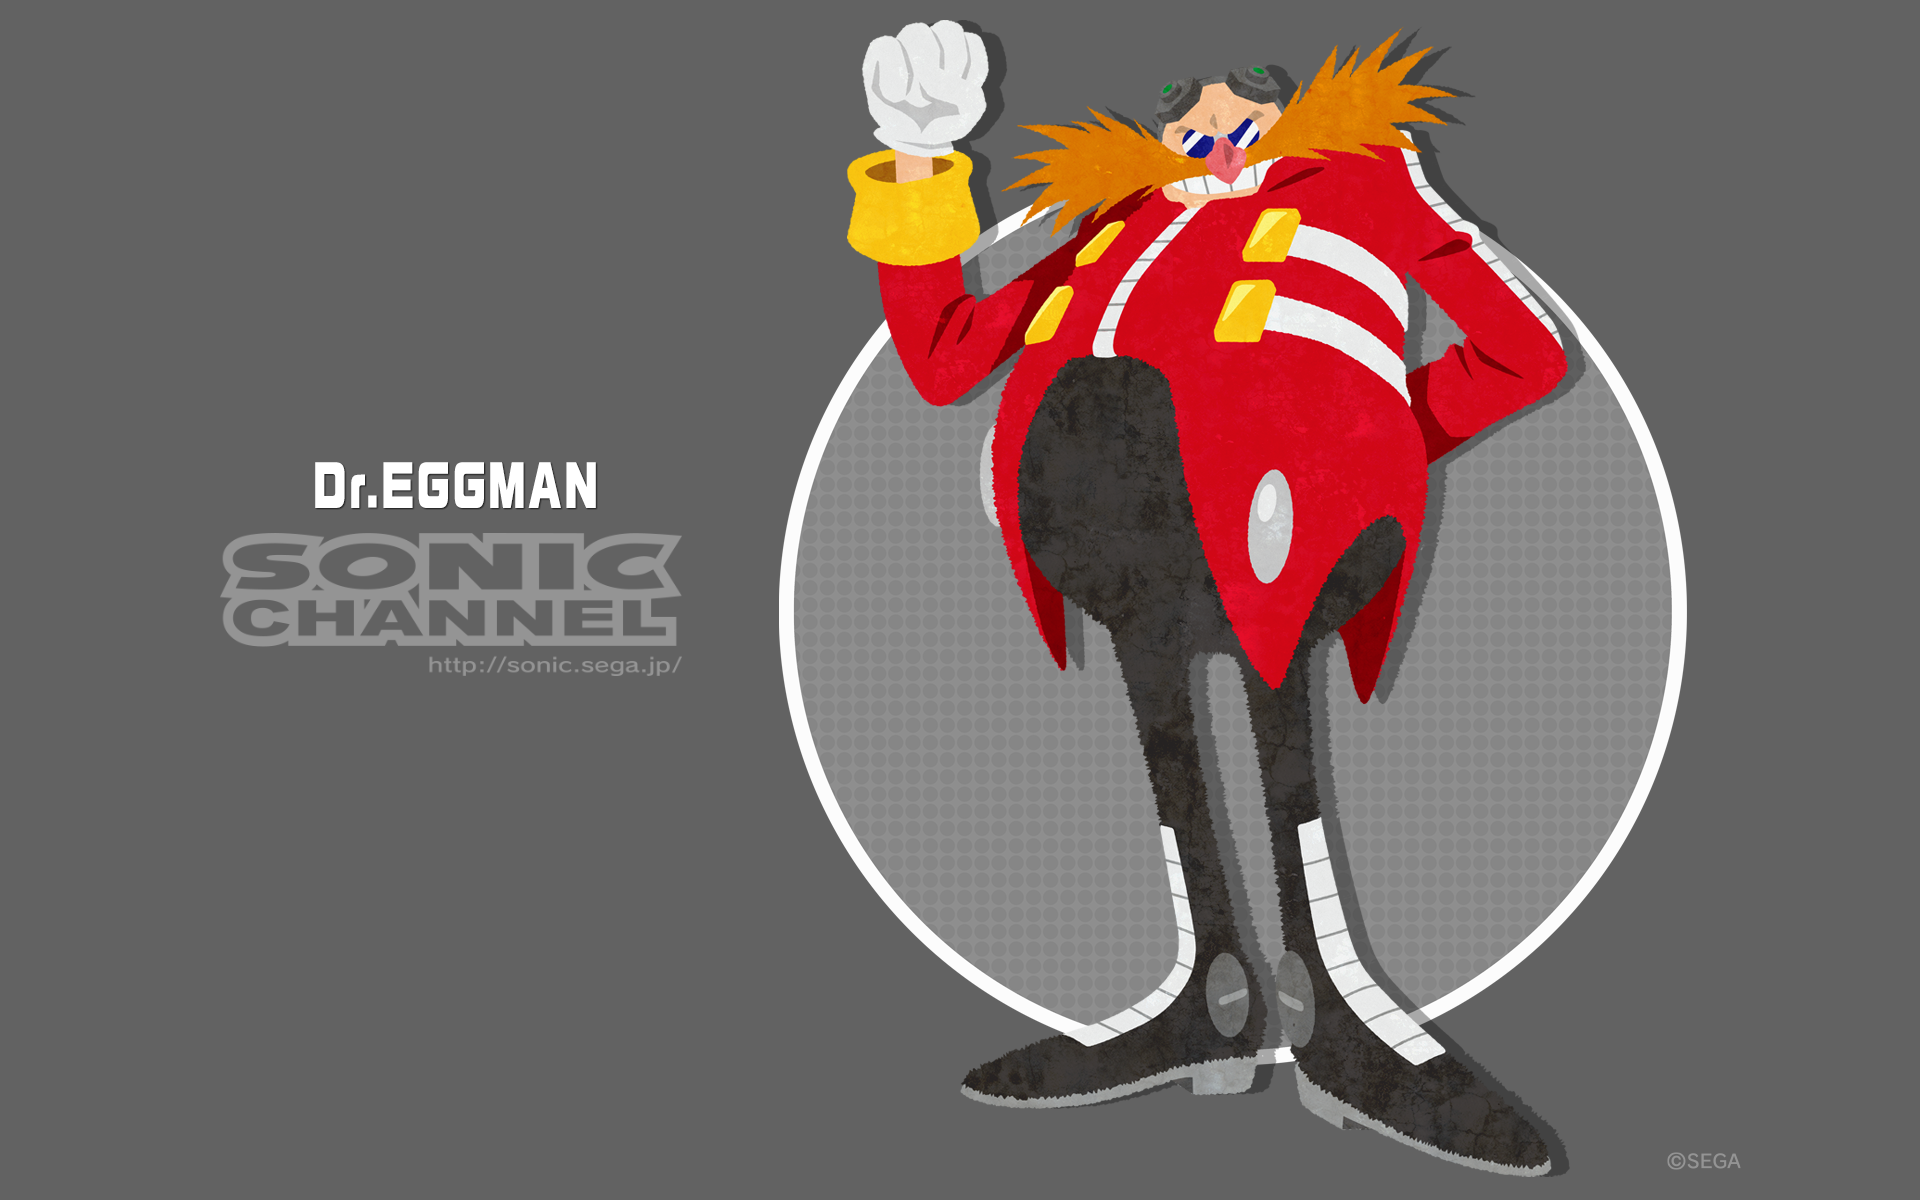 http://sonic.sega.jp/SonicChannel/enjoy/image/wallpaper_154_eggman_06_pc.png